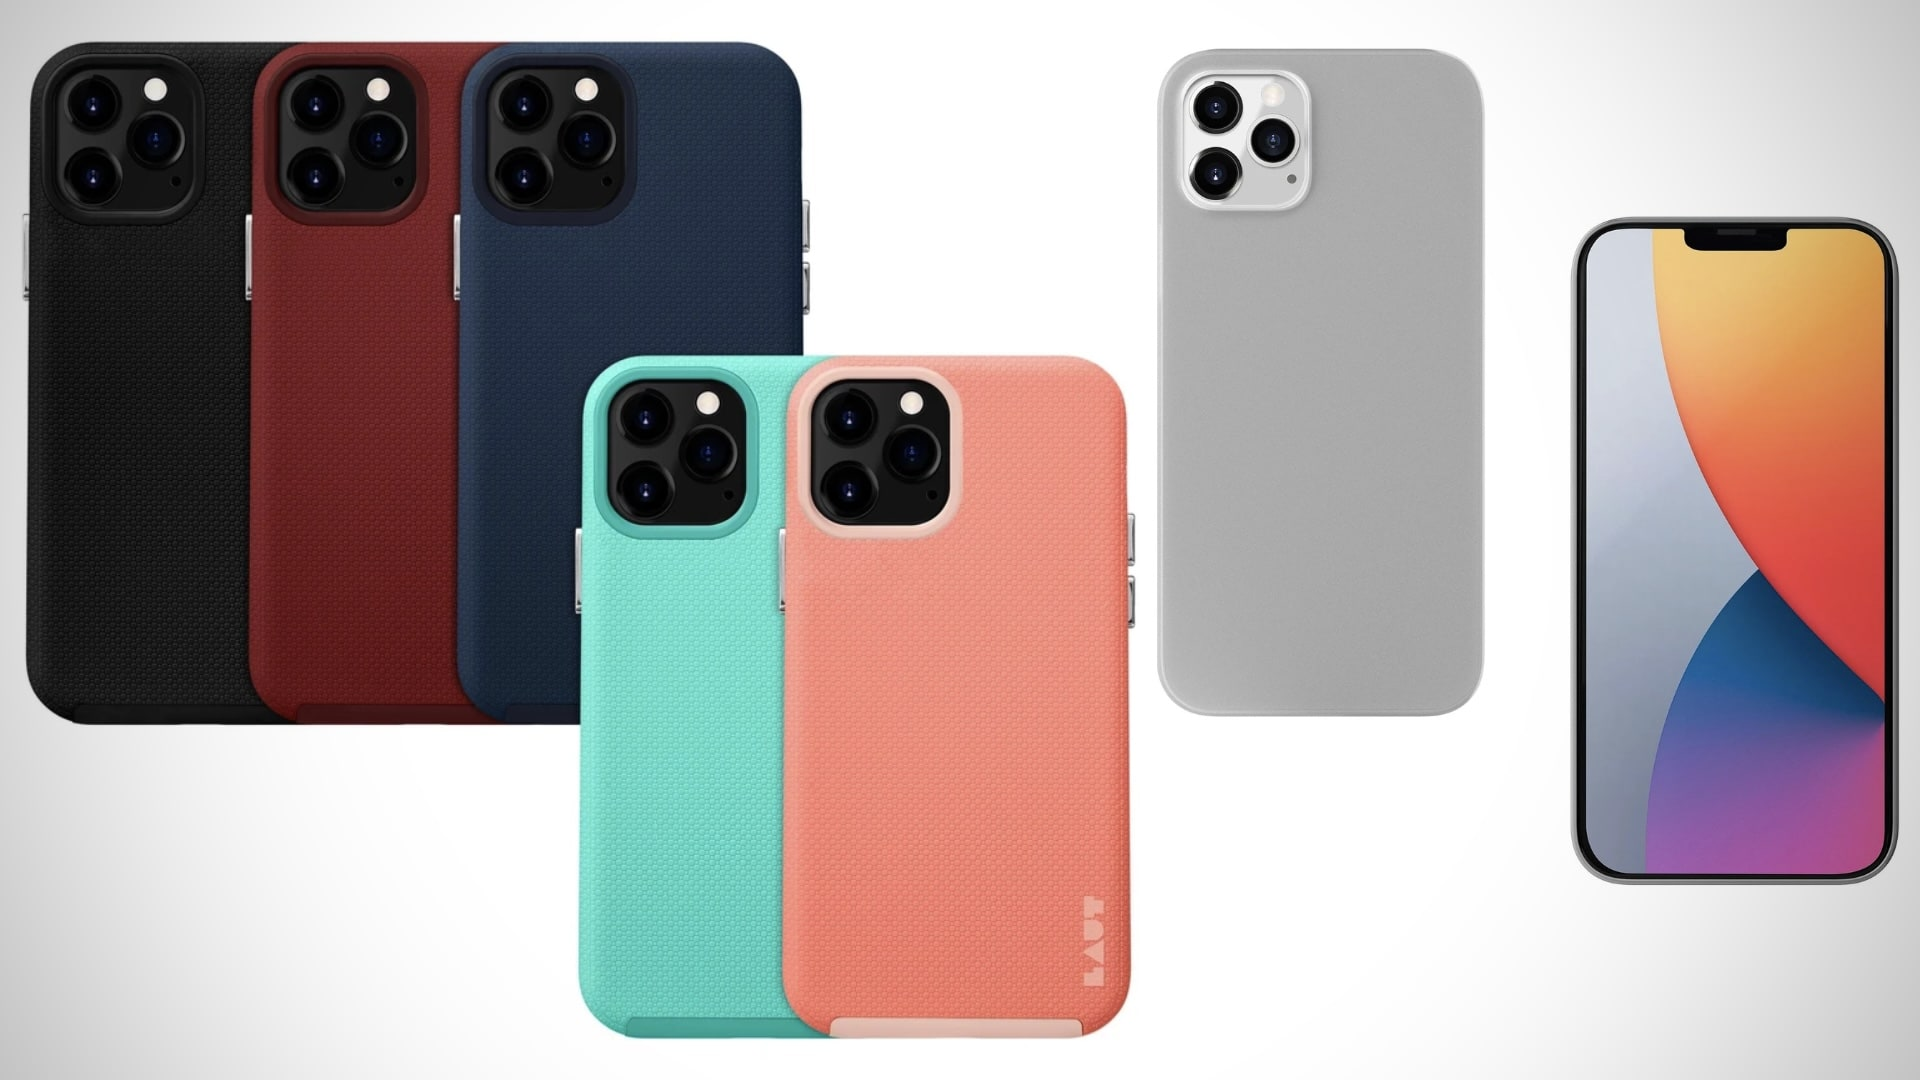 Shield your new iPhone 12 with great cases, screen protectors at 25% off